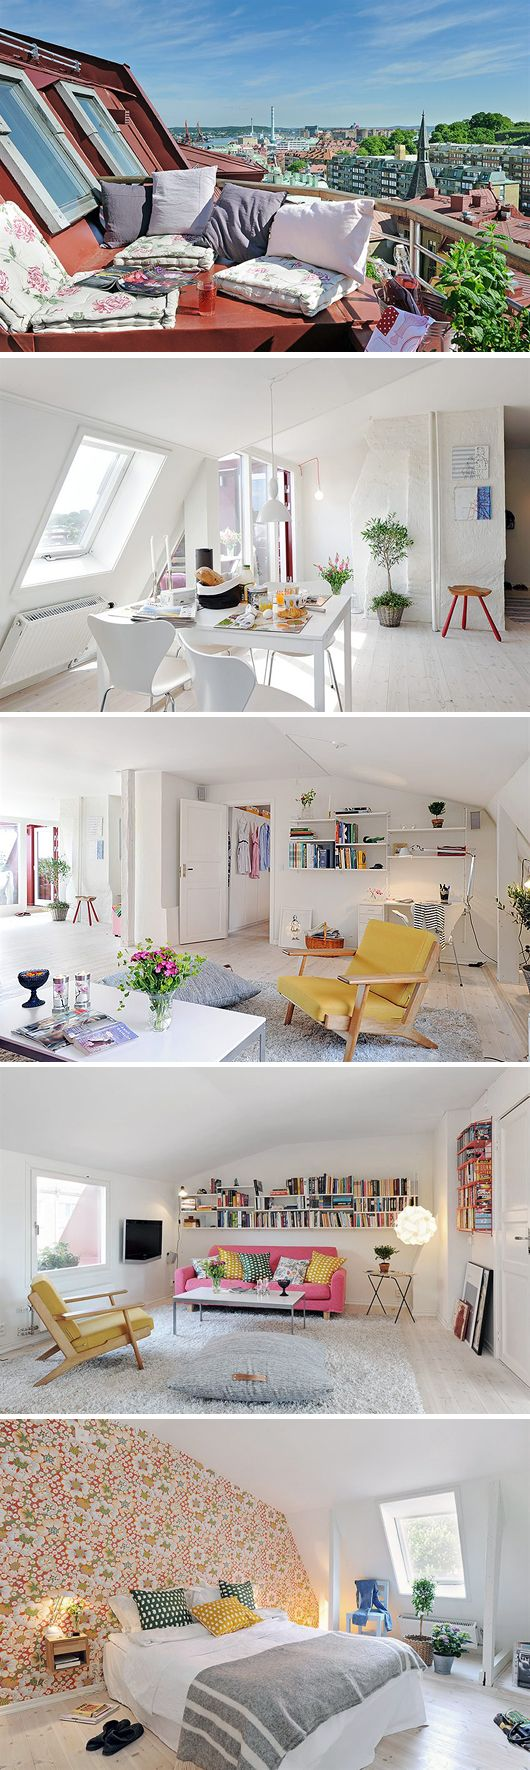 interior design sweden - partments, Spaces and Home on Pinterest